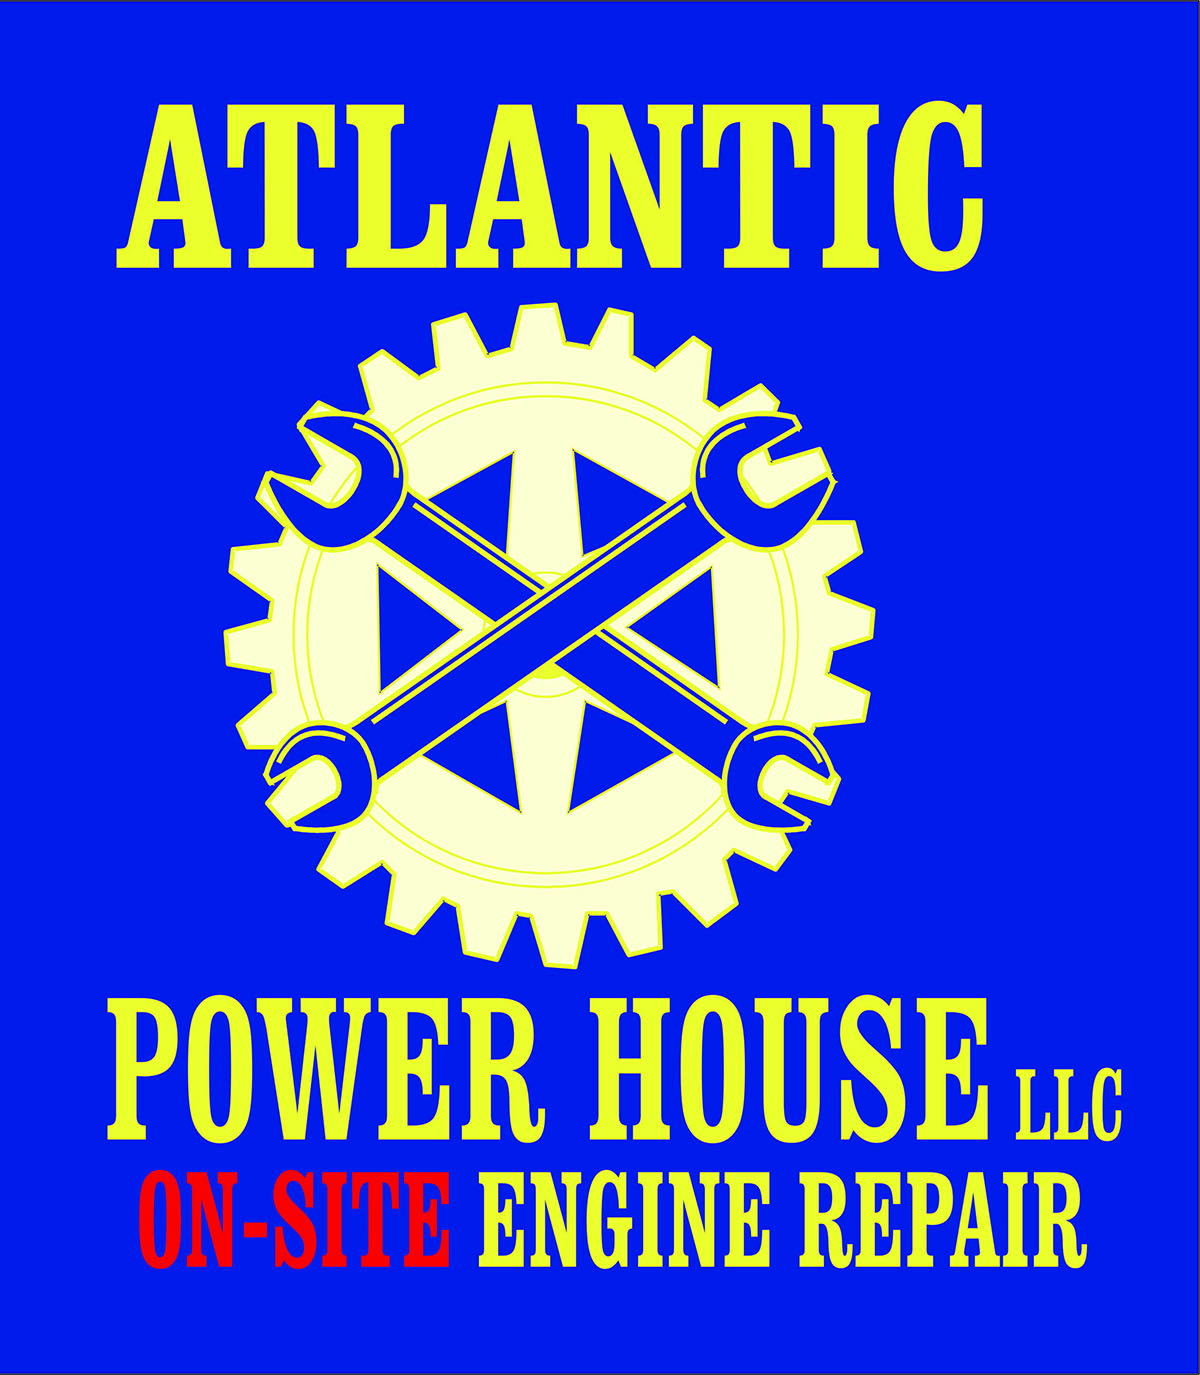 Atlanticpowerhouse atlantic power house has been providing southern atlantic county with quality professional engine repair since 2004 we offer drop off and on site biocorpaavc Choice Image